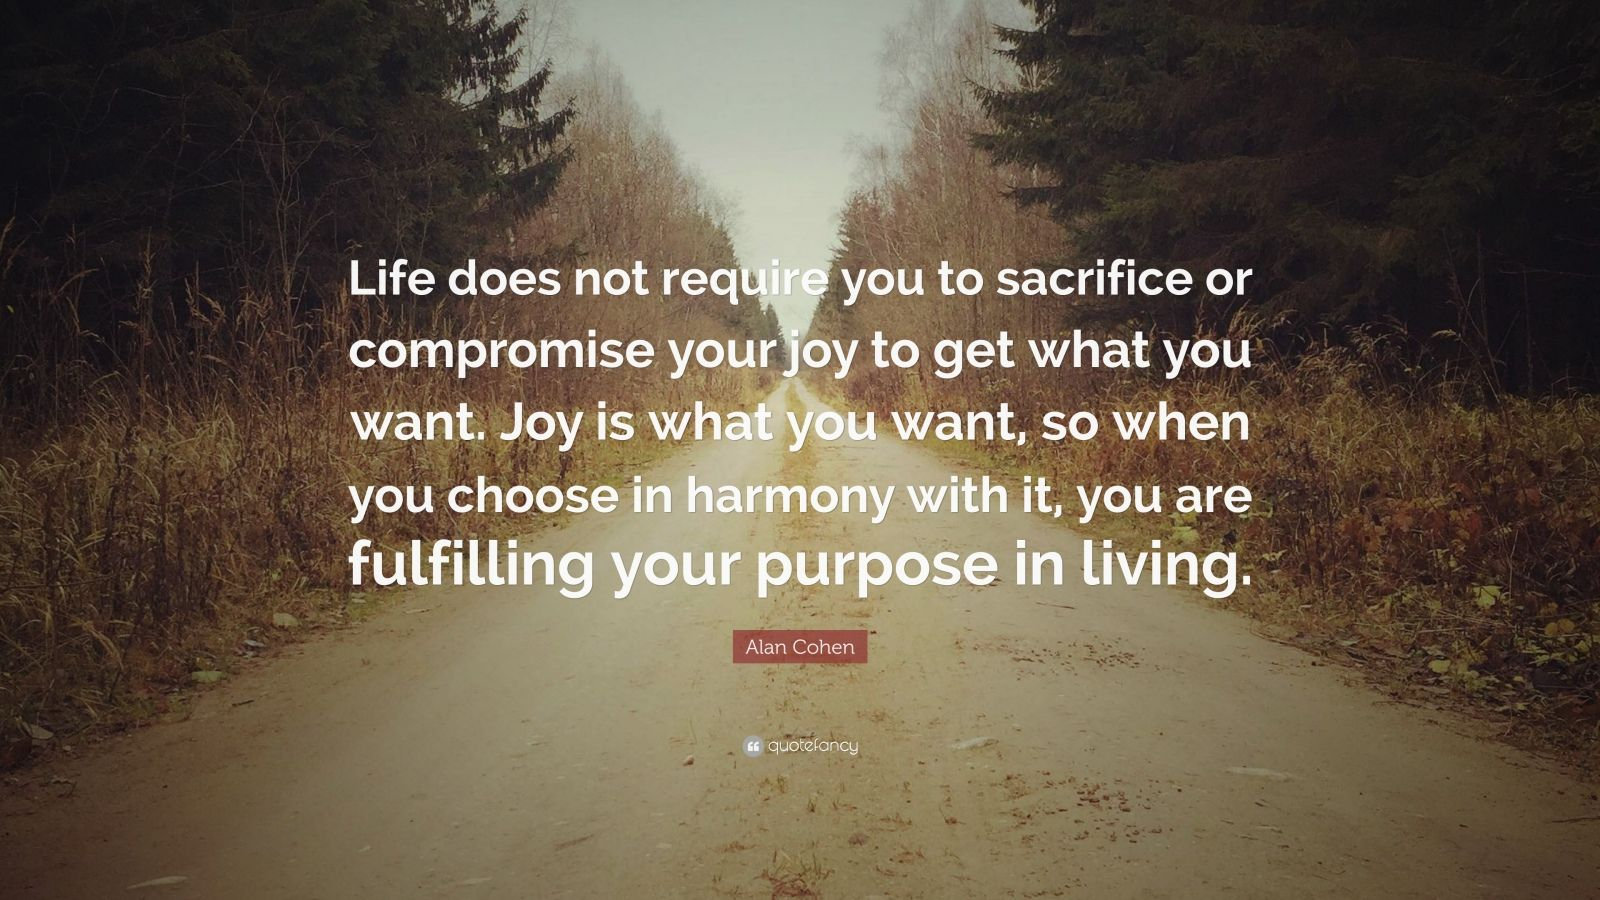 """Alan Cohen Quote: """"Life does not require you to sacrifice or compromise your joy to get what you want. Joy is what you want, so when you choose in harmony with it, you are fulfilling your purpose in living."""""""